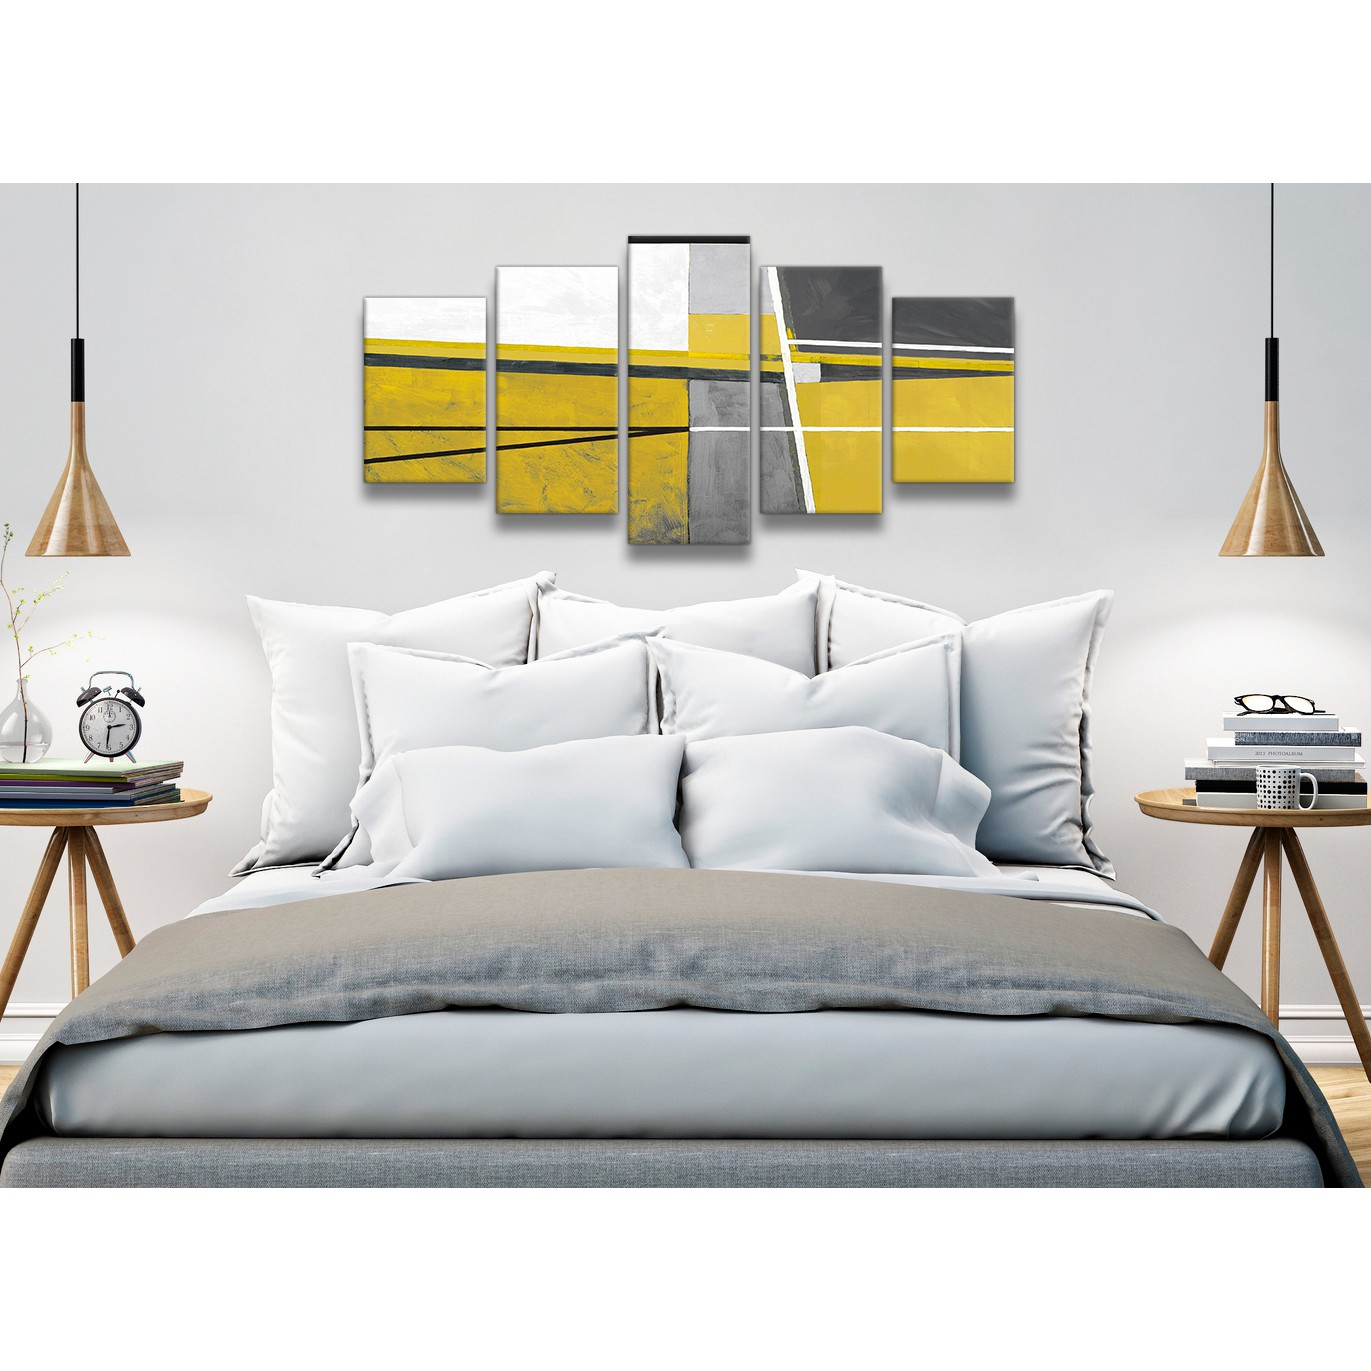 5 Panel Mustard Yellow Grey Painting Abstract Bedroom